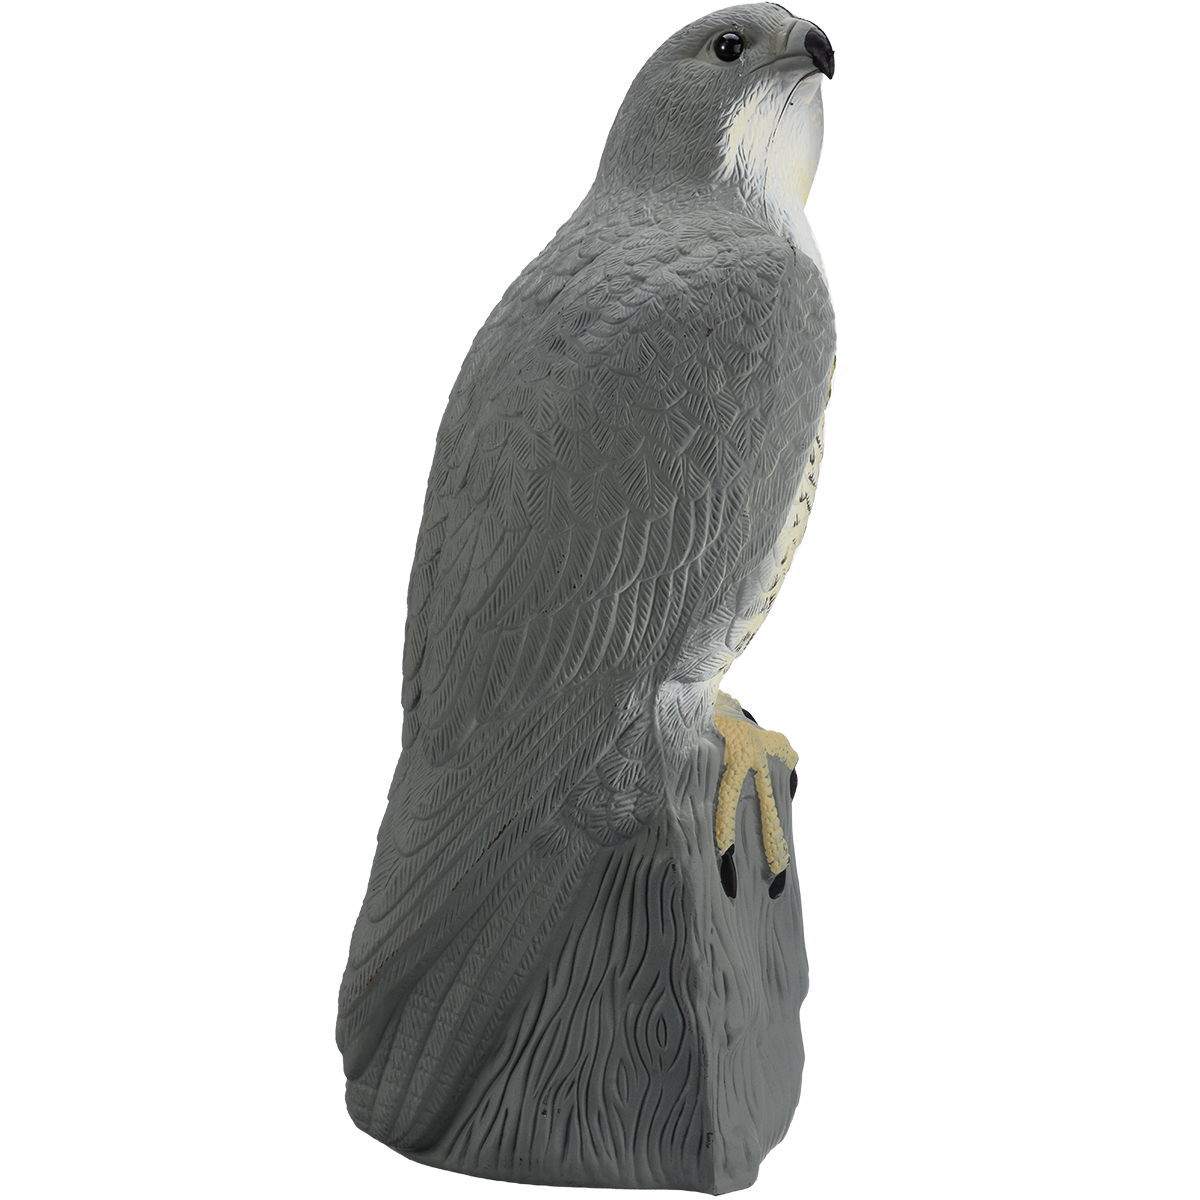 Fake Falcon Hawk Decoy Bird Pigeon Deterrent Scarer Repeller Garden Lawn Decor H